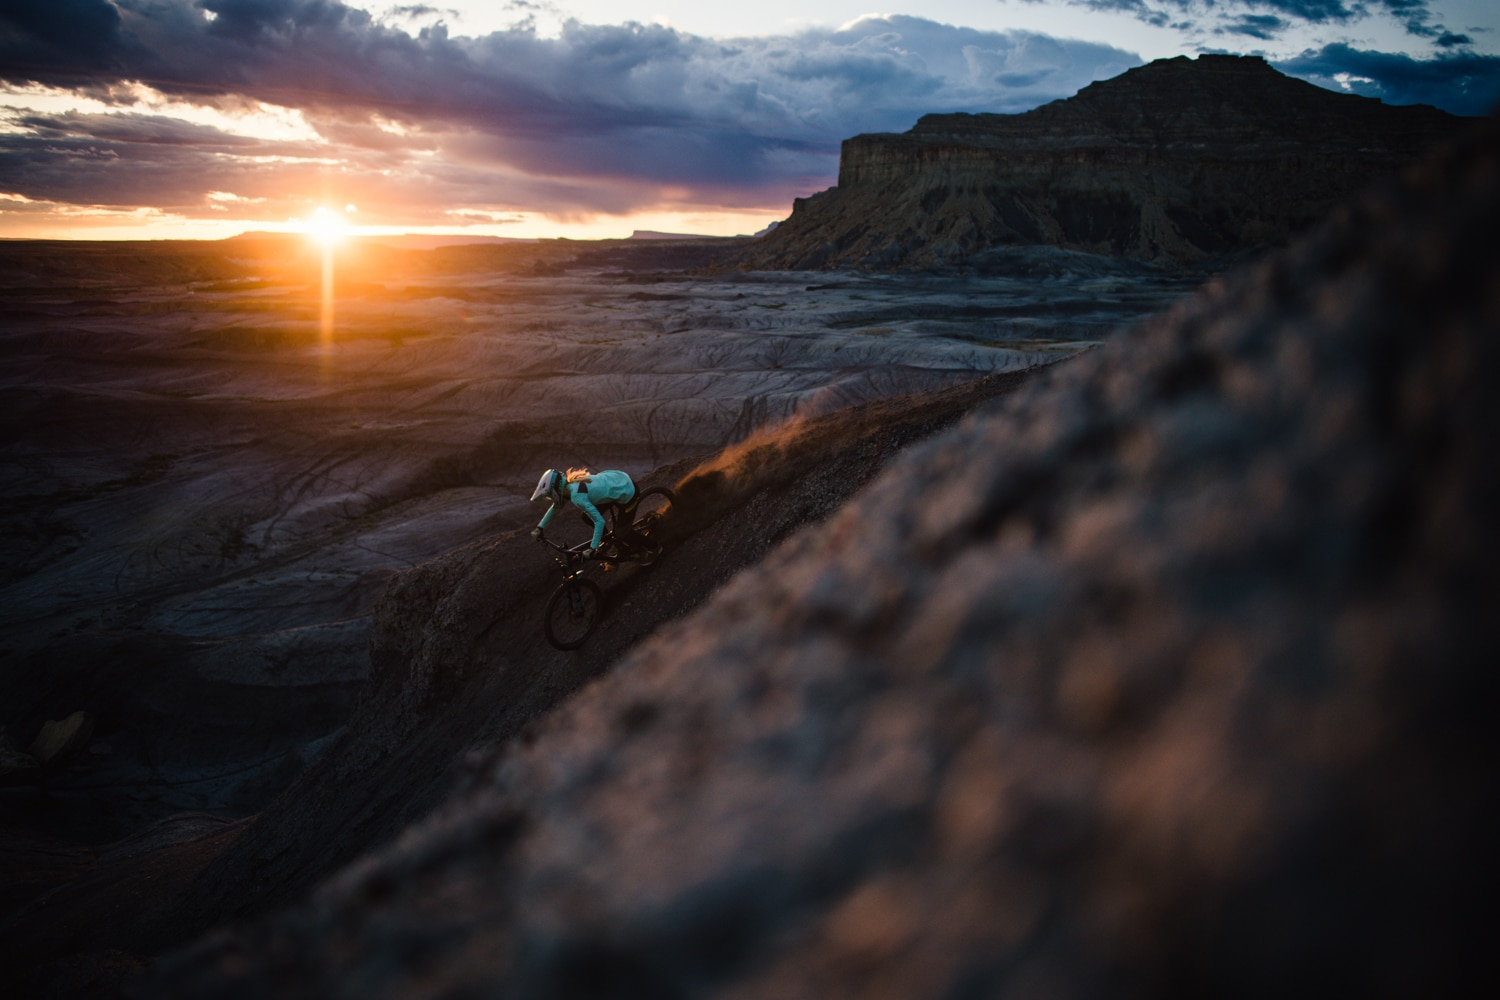 Satchel Cronk, Category Semi-Finalist 2019: Emerging by Red Bull Photography